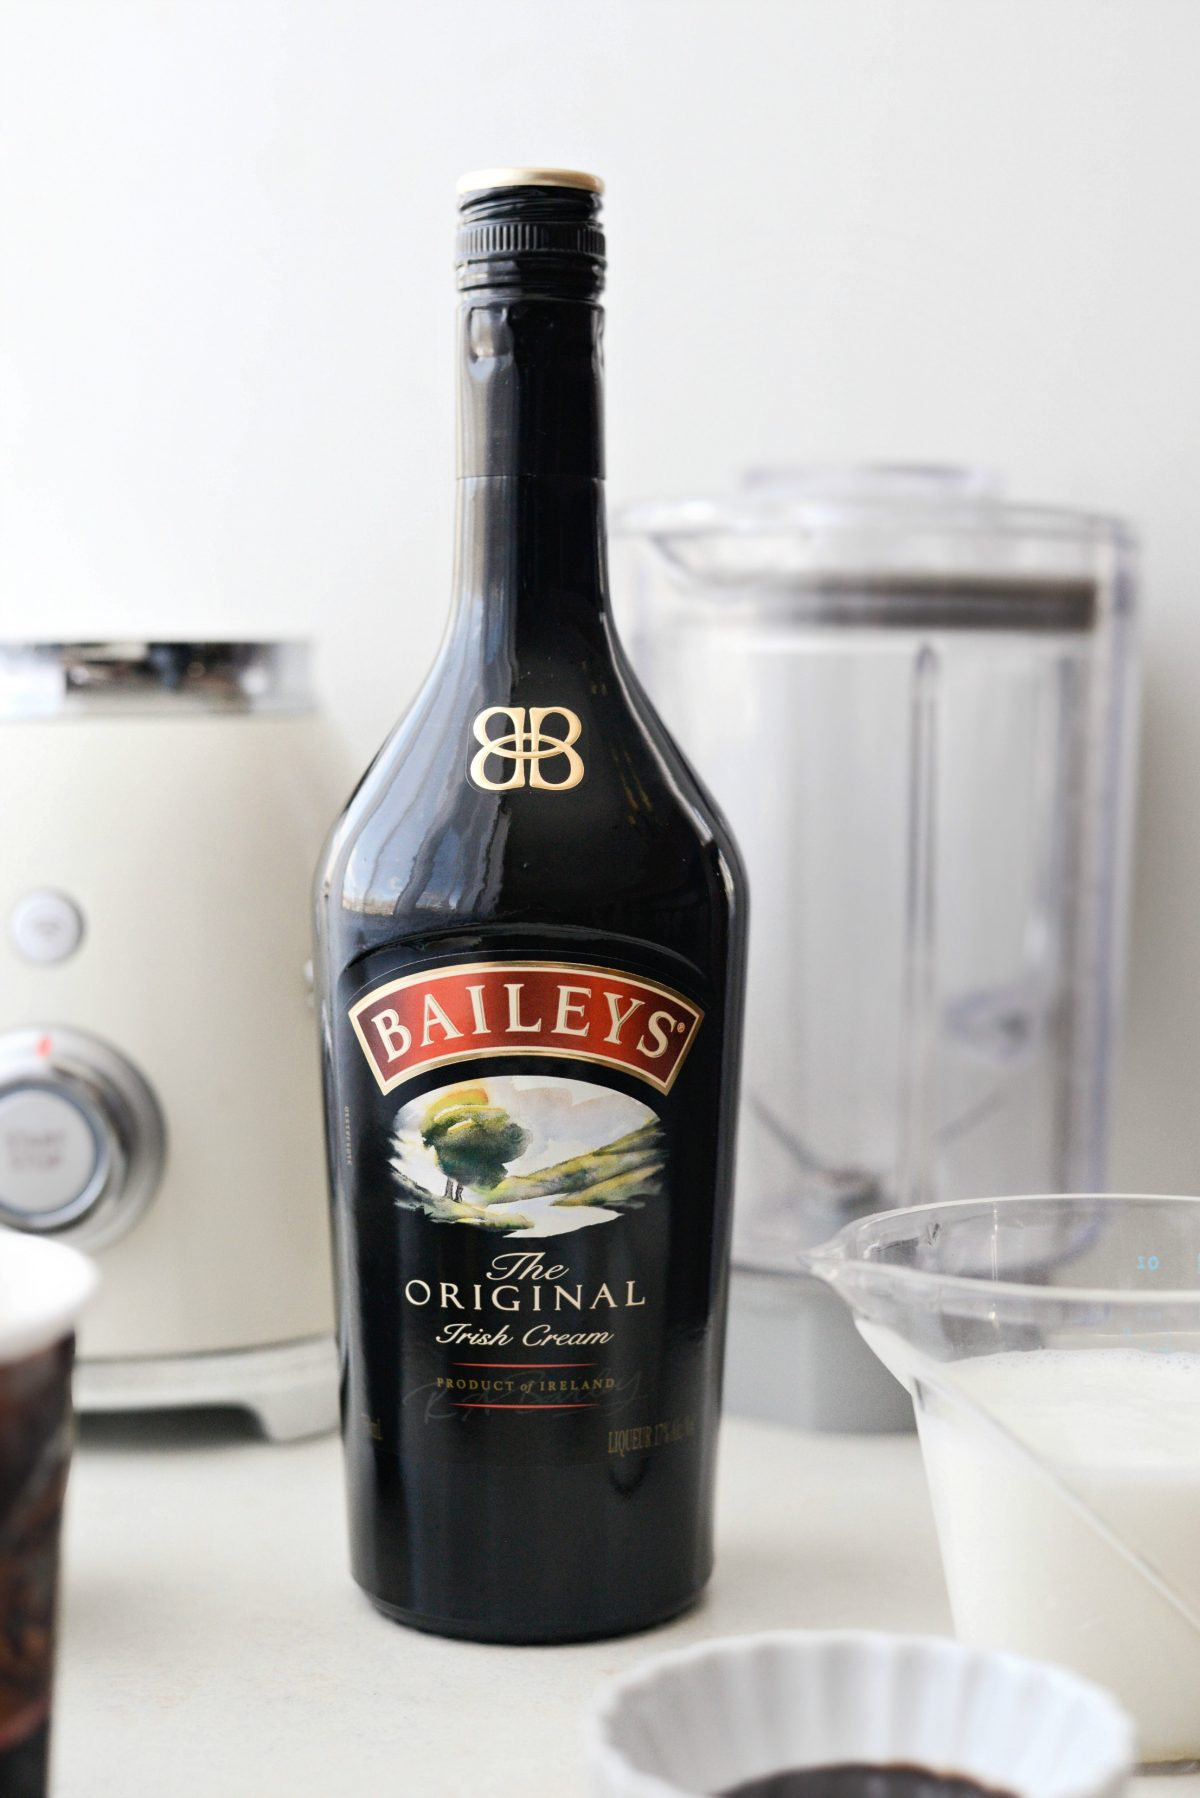 Baileys and Coffee Milkshake l SimplyScratch.com #baileys #irishcream #milkshake #coffee #homemade #boozy #chocolate #drink #beverage #shake #stpatricksday